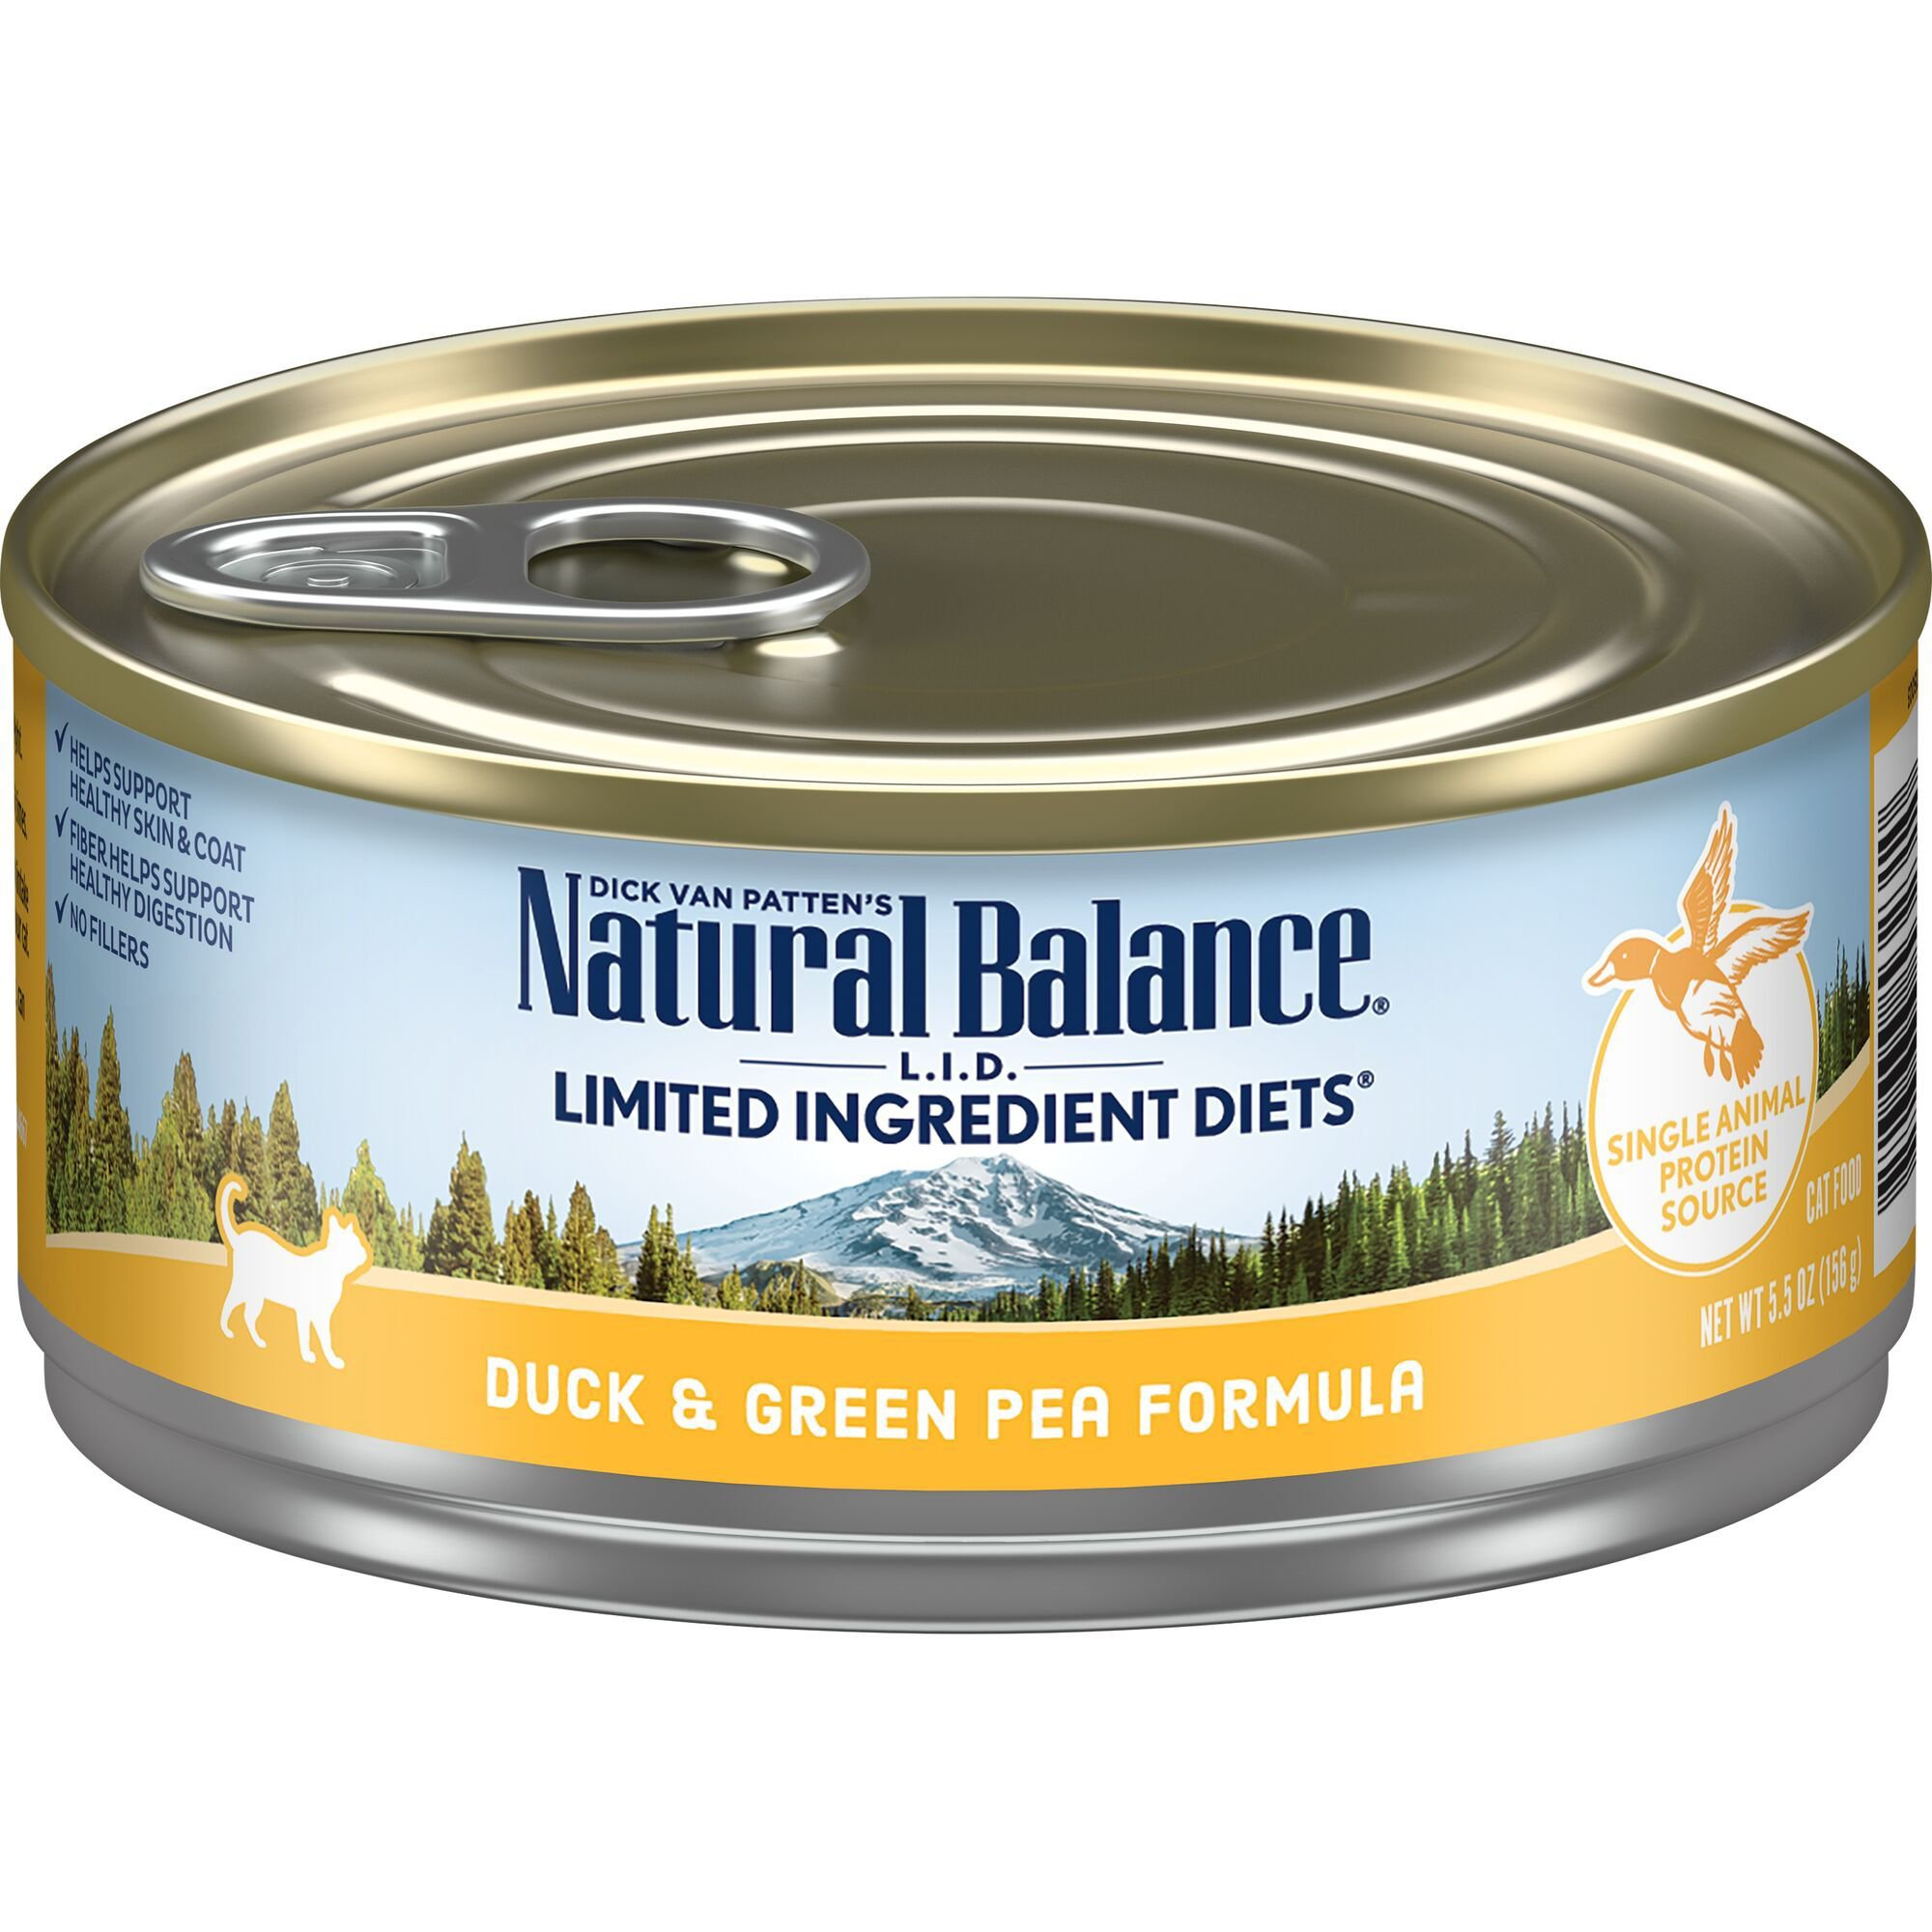 Natural Balance L.I.D. Limited Ingredient Diets Canned Cat & Kitten Food